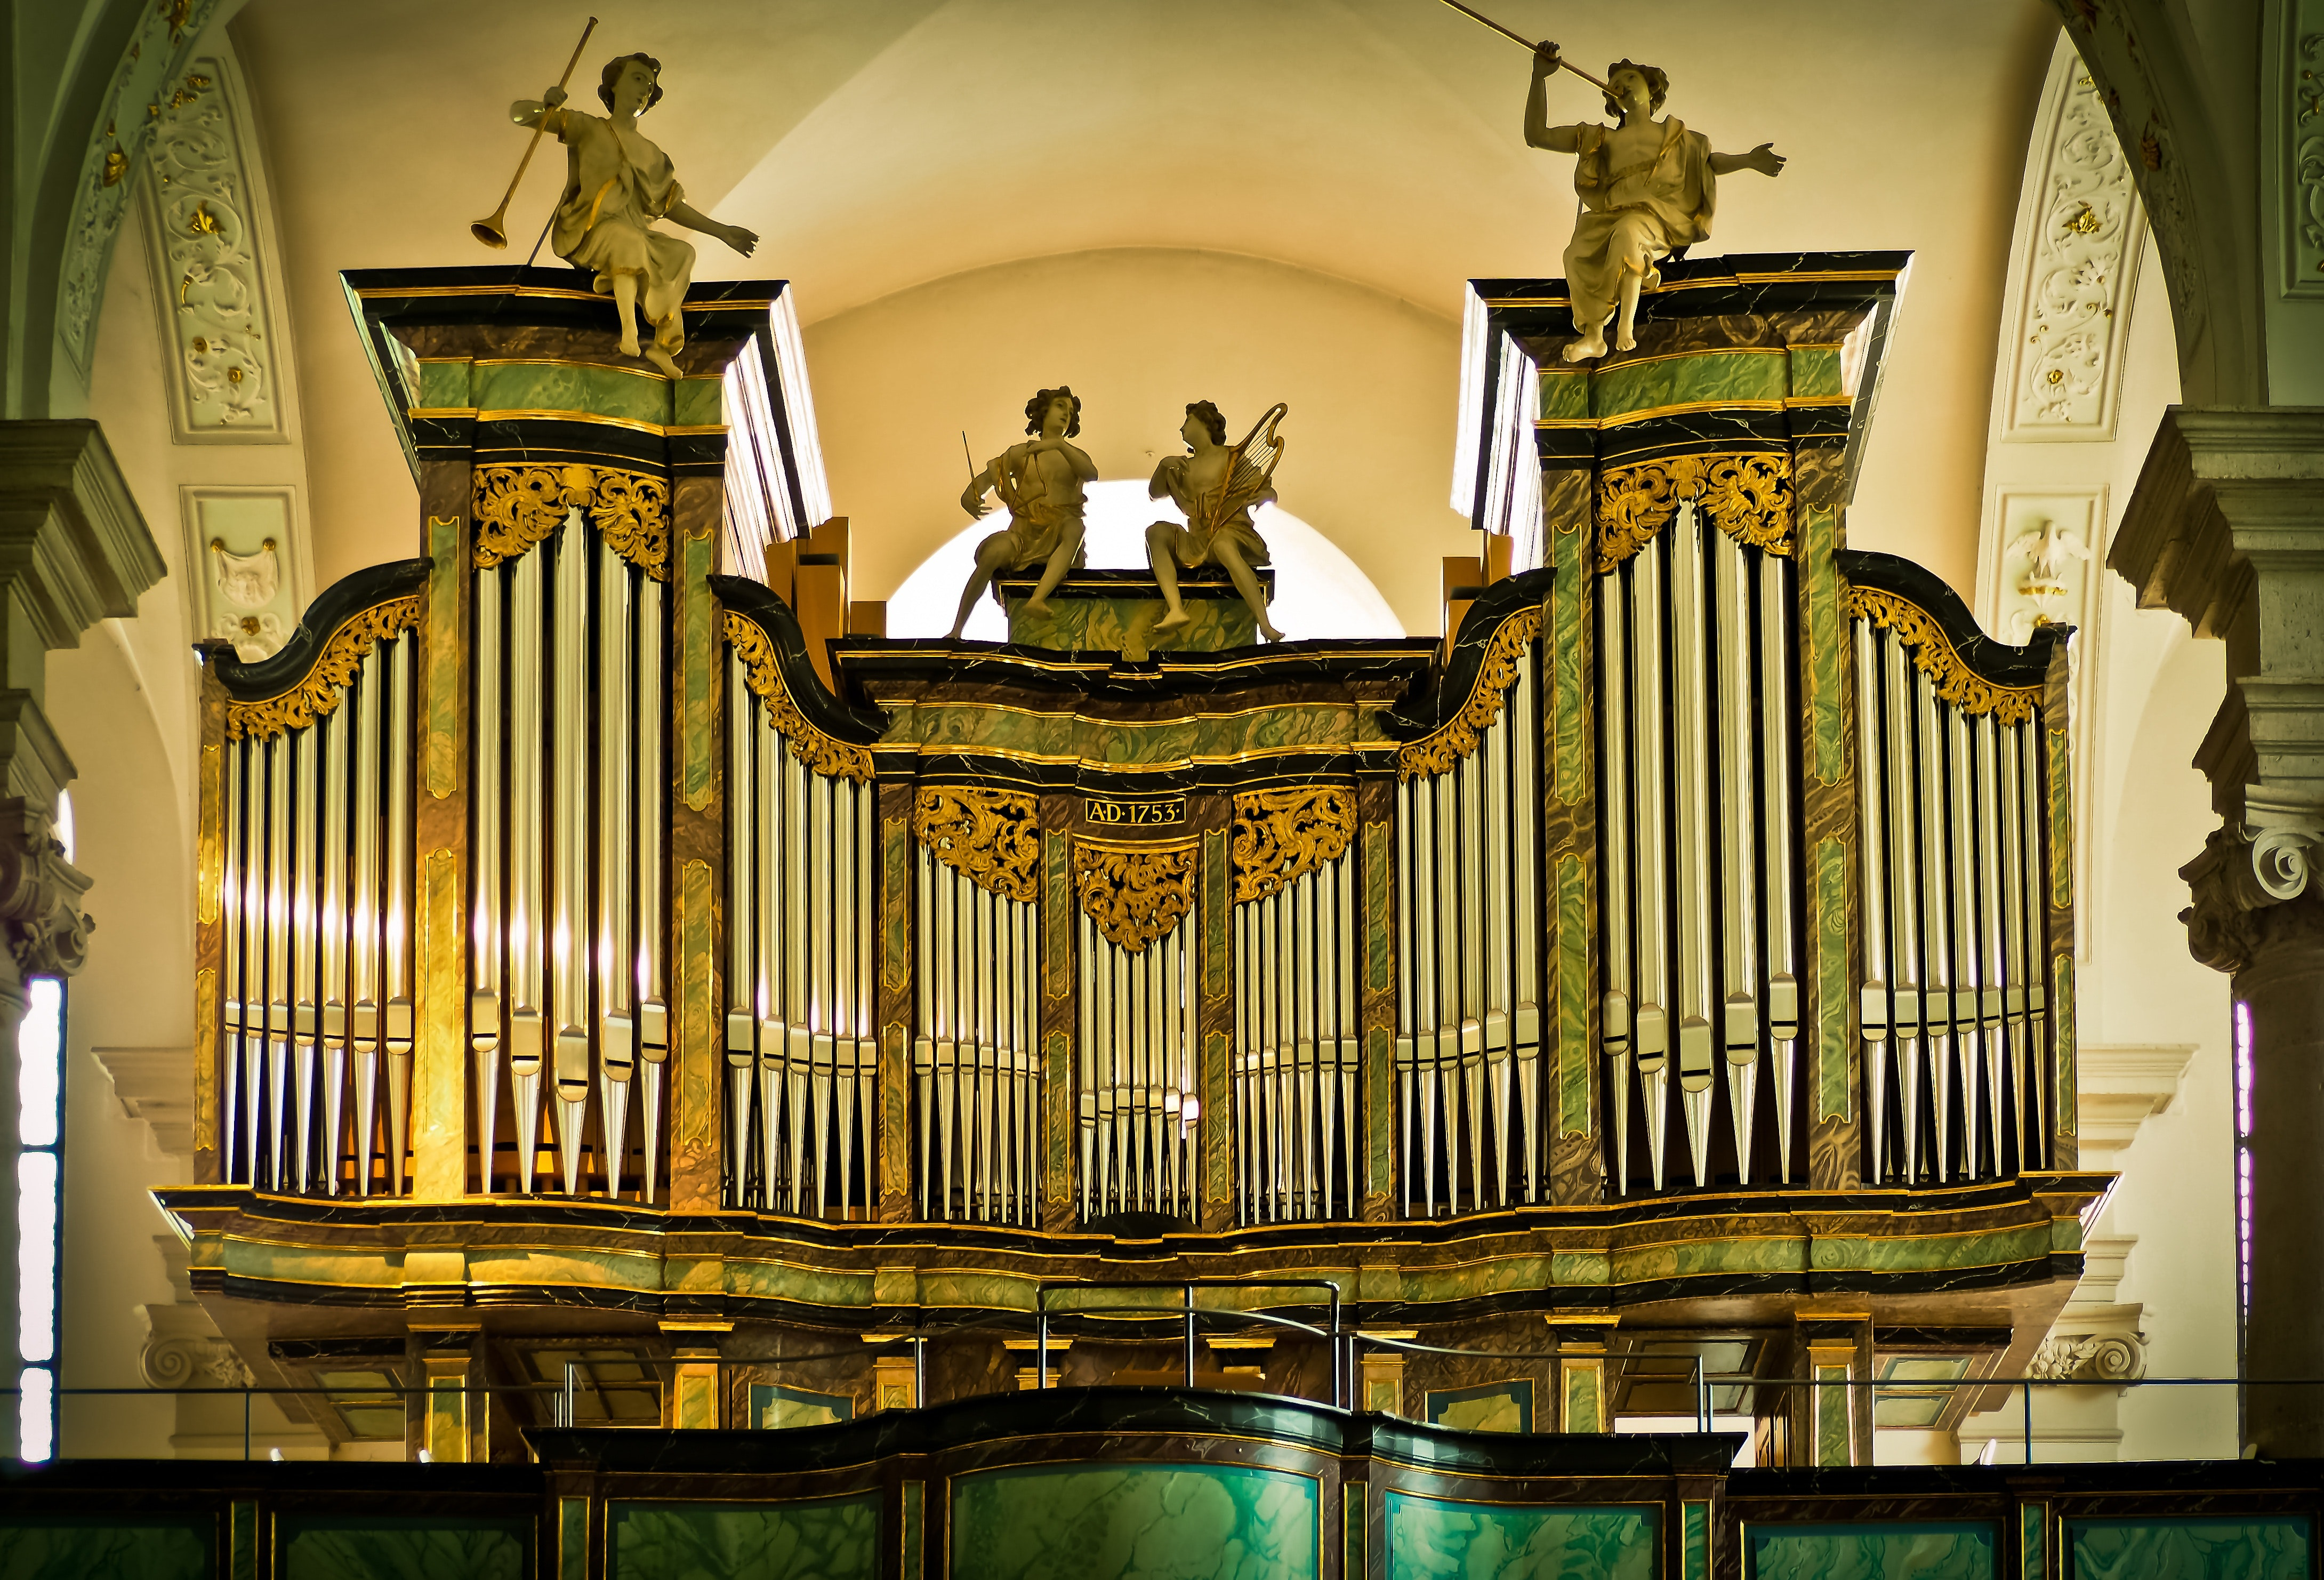 Brown Architectural Structure during Daytime, Organ, Musical instrument, Interior, Ornate, HQ Photo